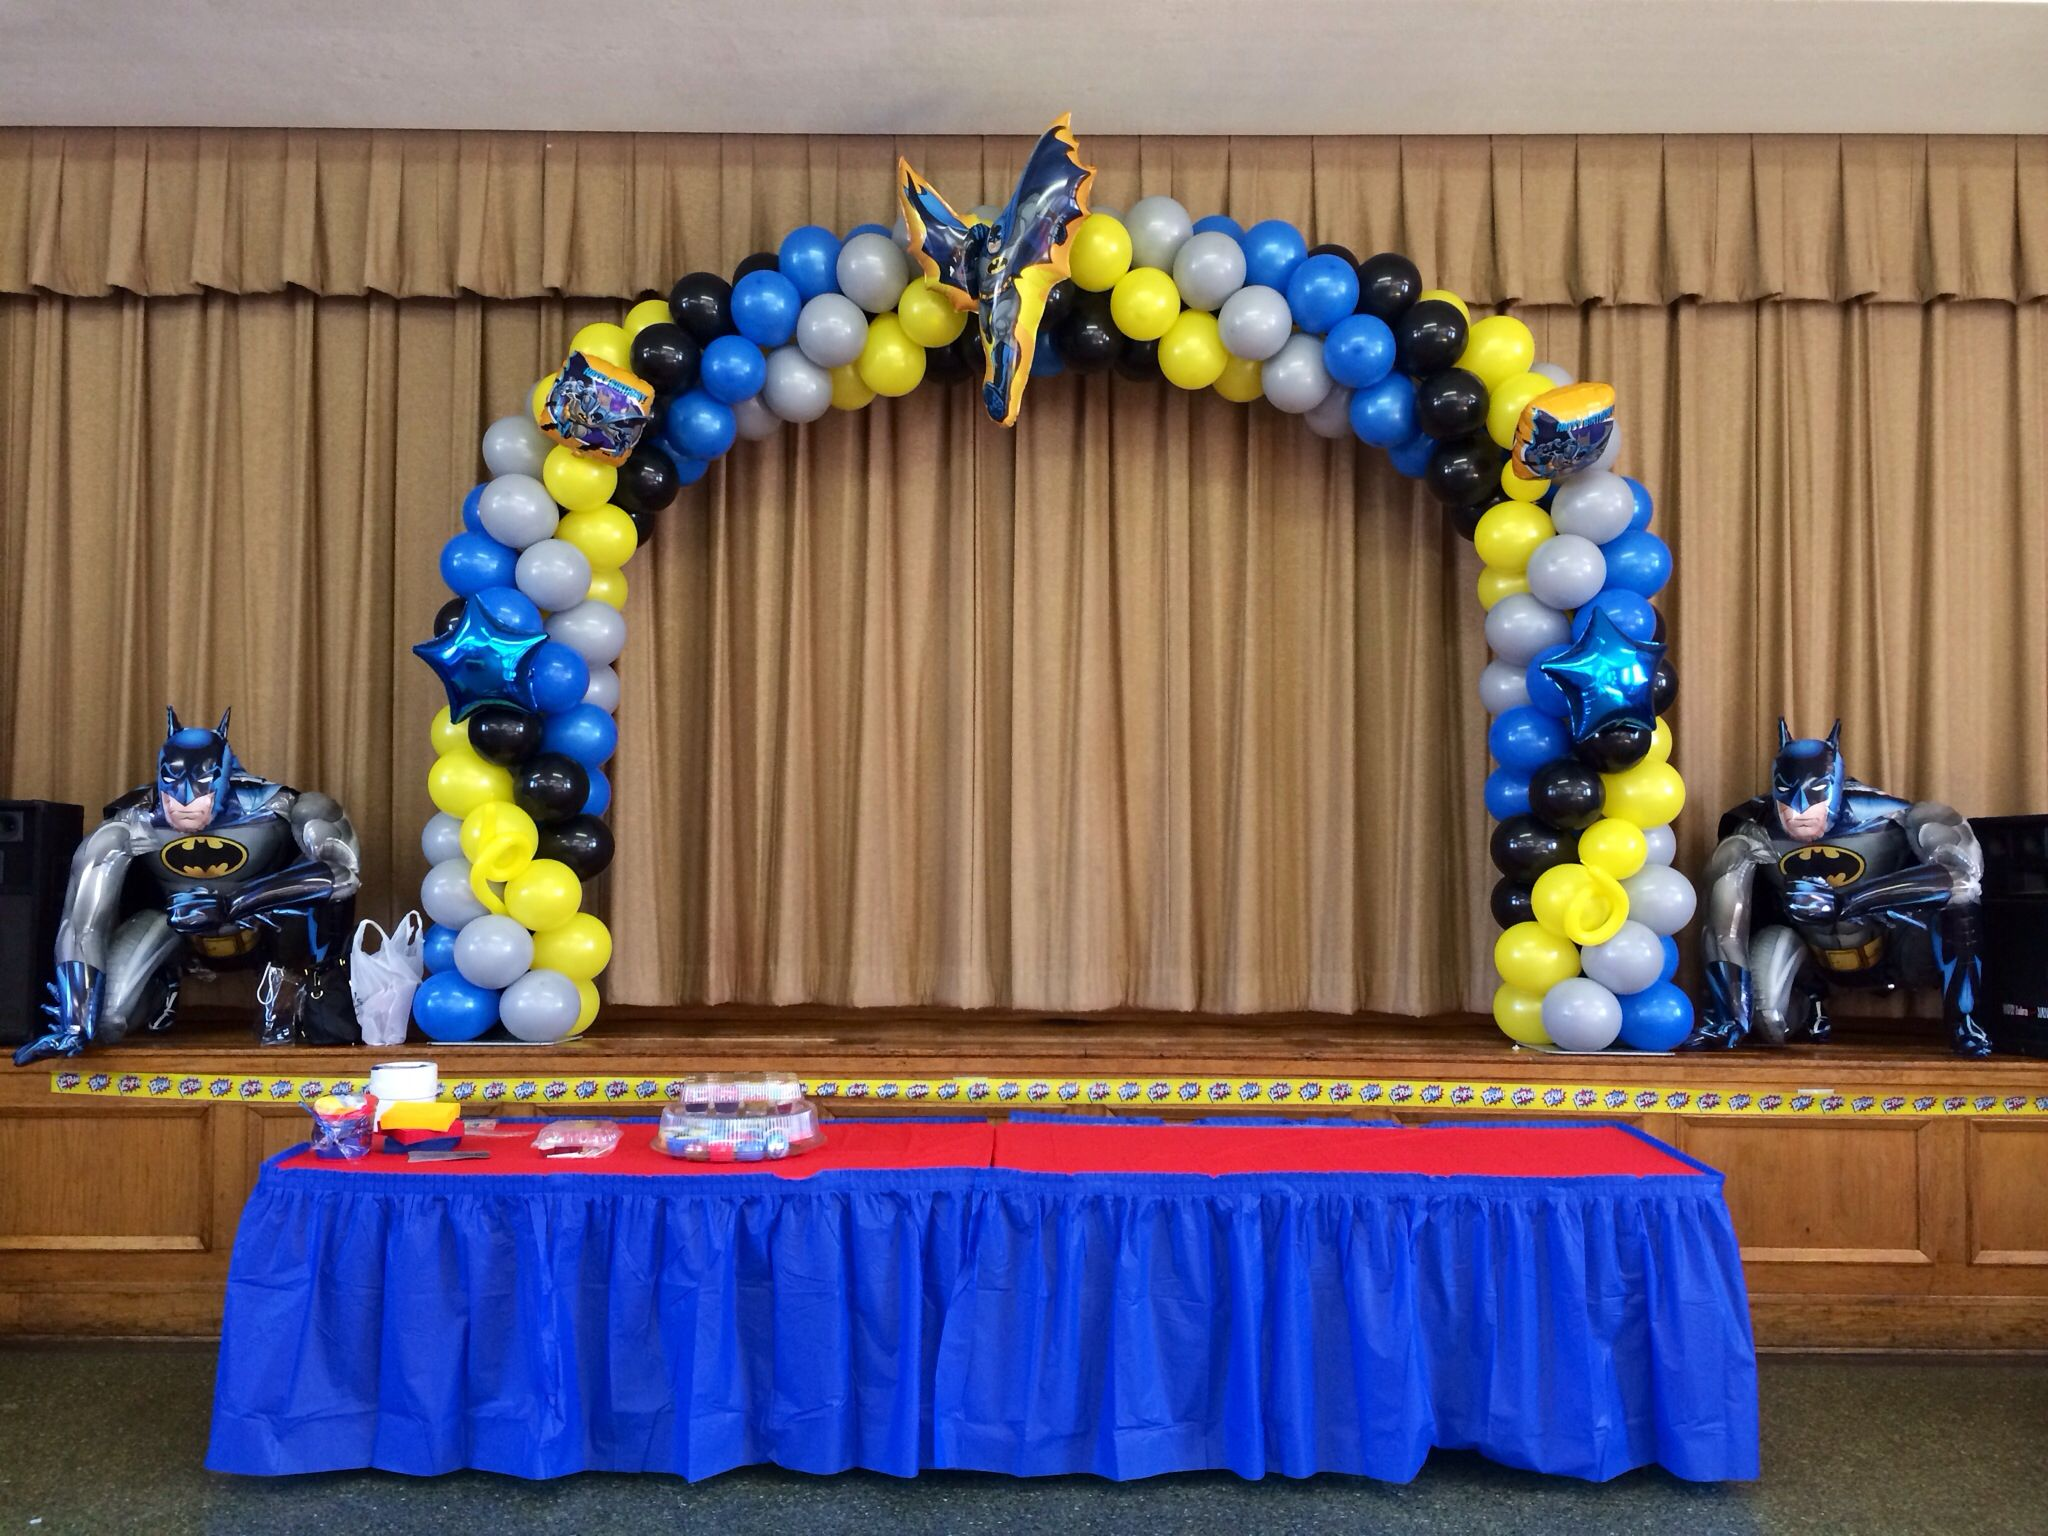 Batman balloon arch with airwalkers balloon arches for Arches decoration ideas